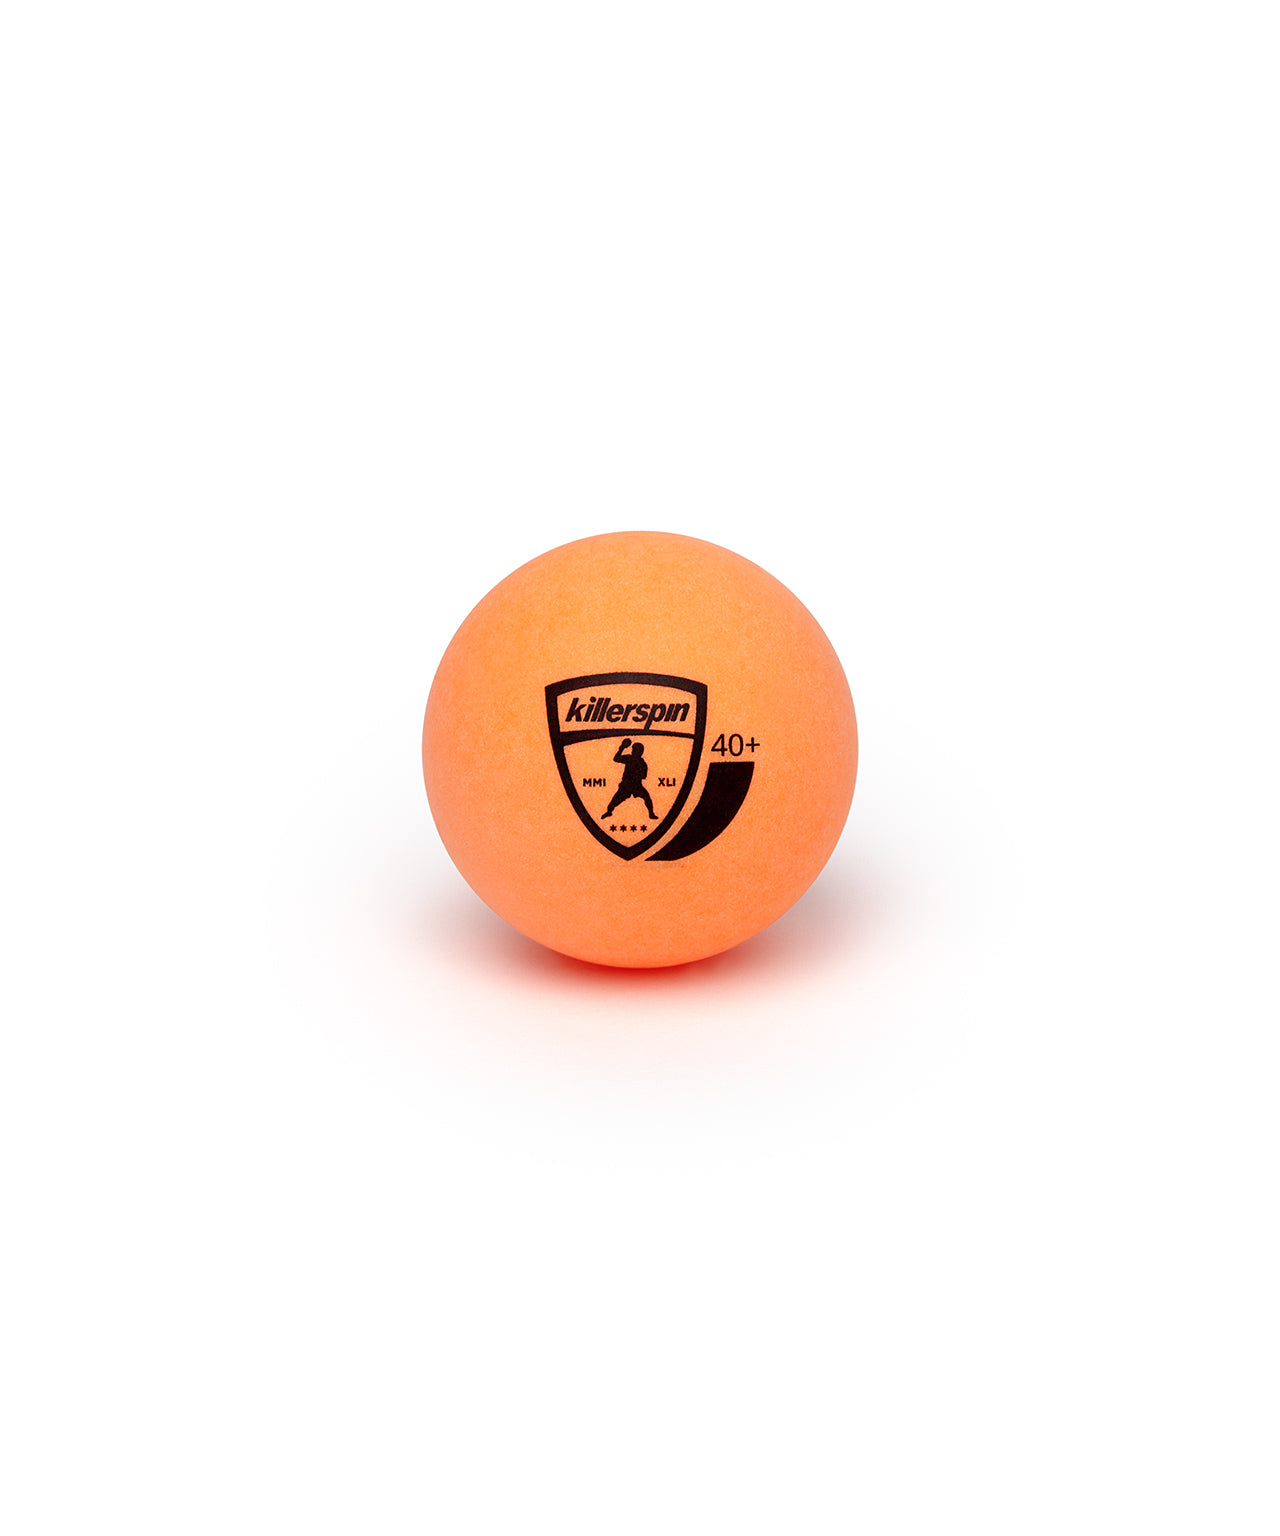 Killerspin Ping Pong Paddle Set JetSet4 - Orange Ball